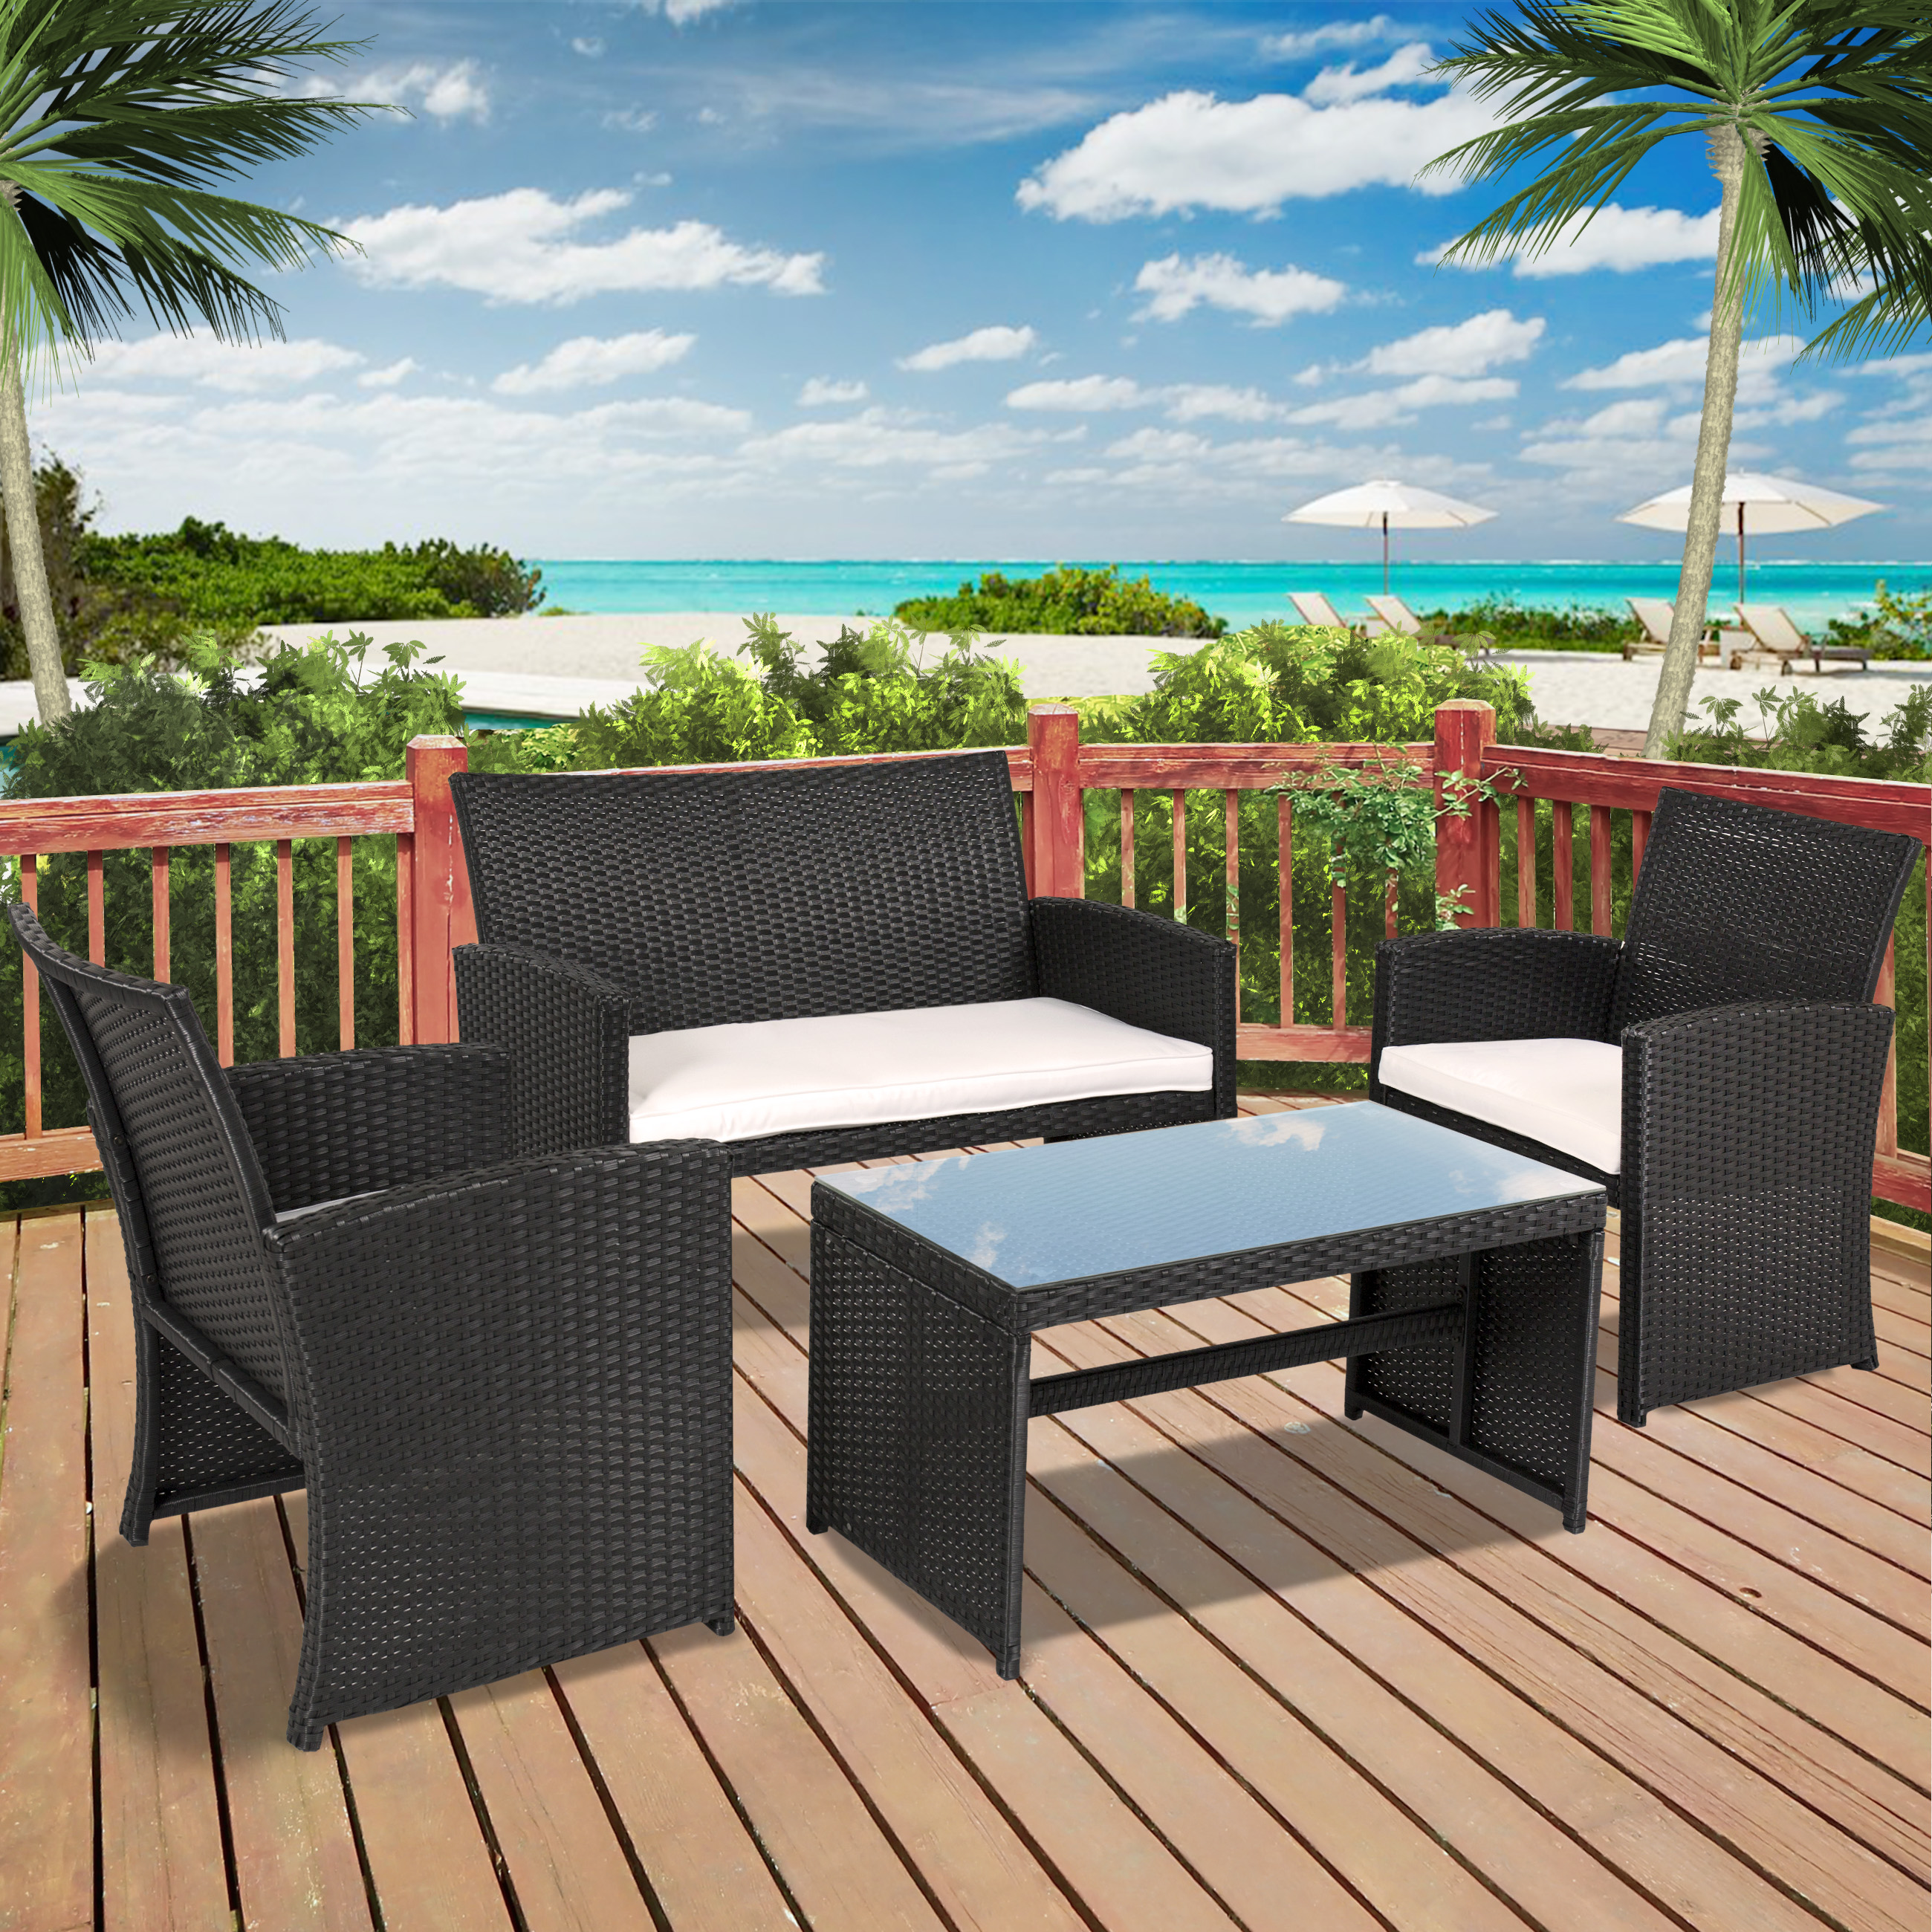 Best Choice Products Outdoor Garden Patio 4pc Cushioned Seat Black Wicker Sofa Furniture... by